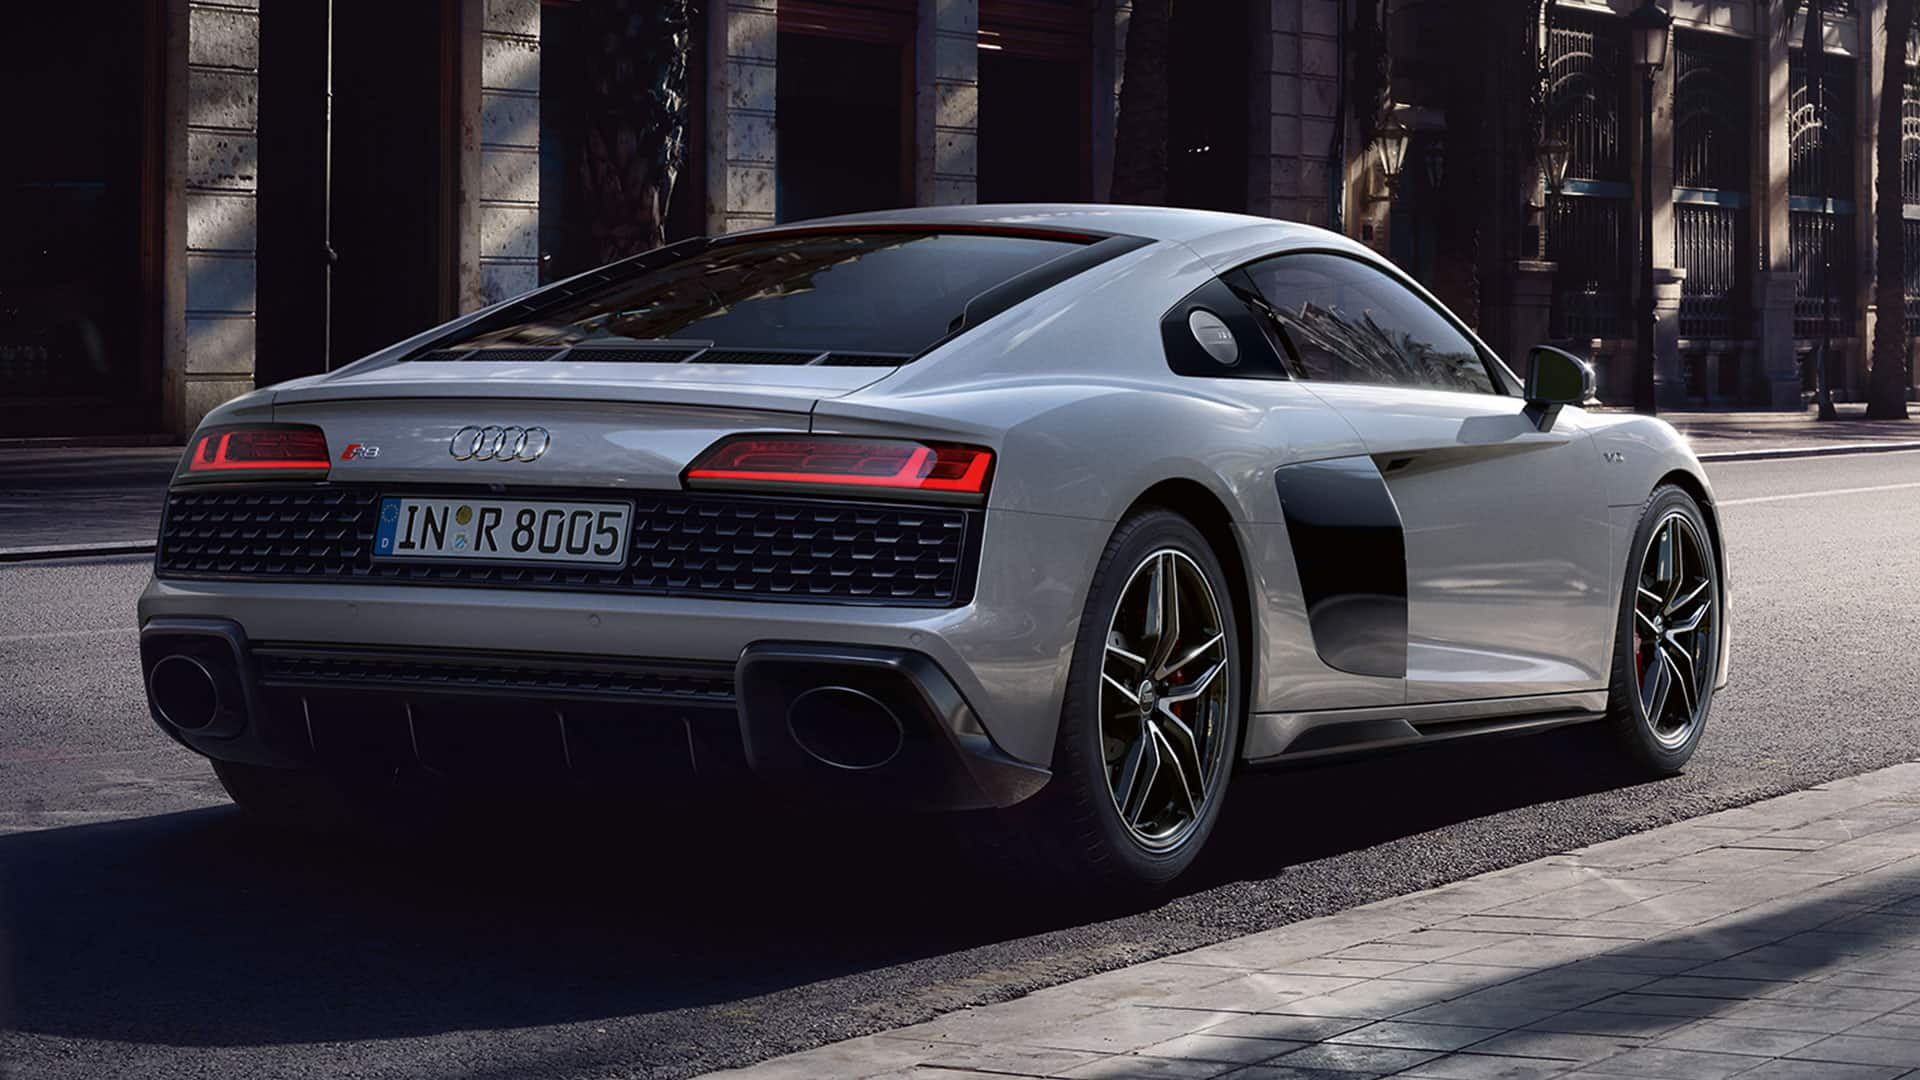 Rearview Audi R8 Coupé V10 quattro